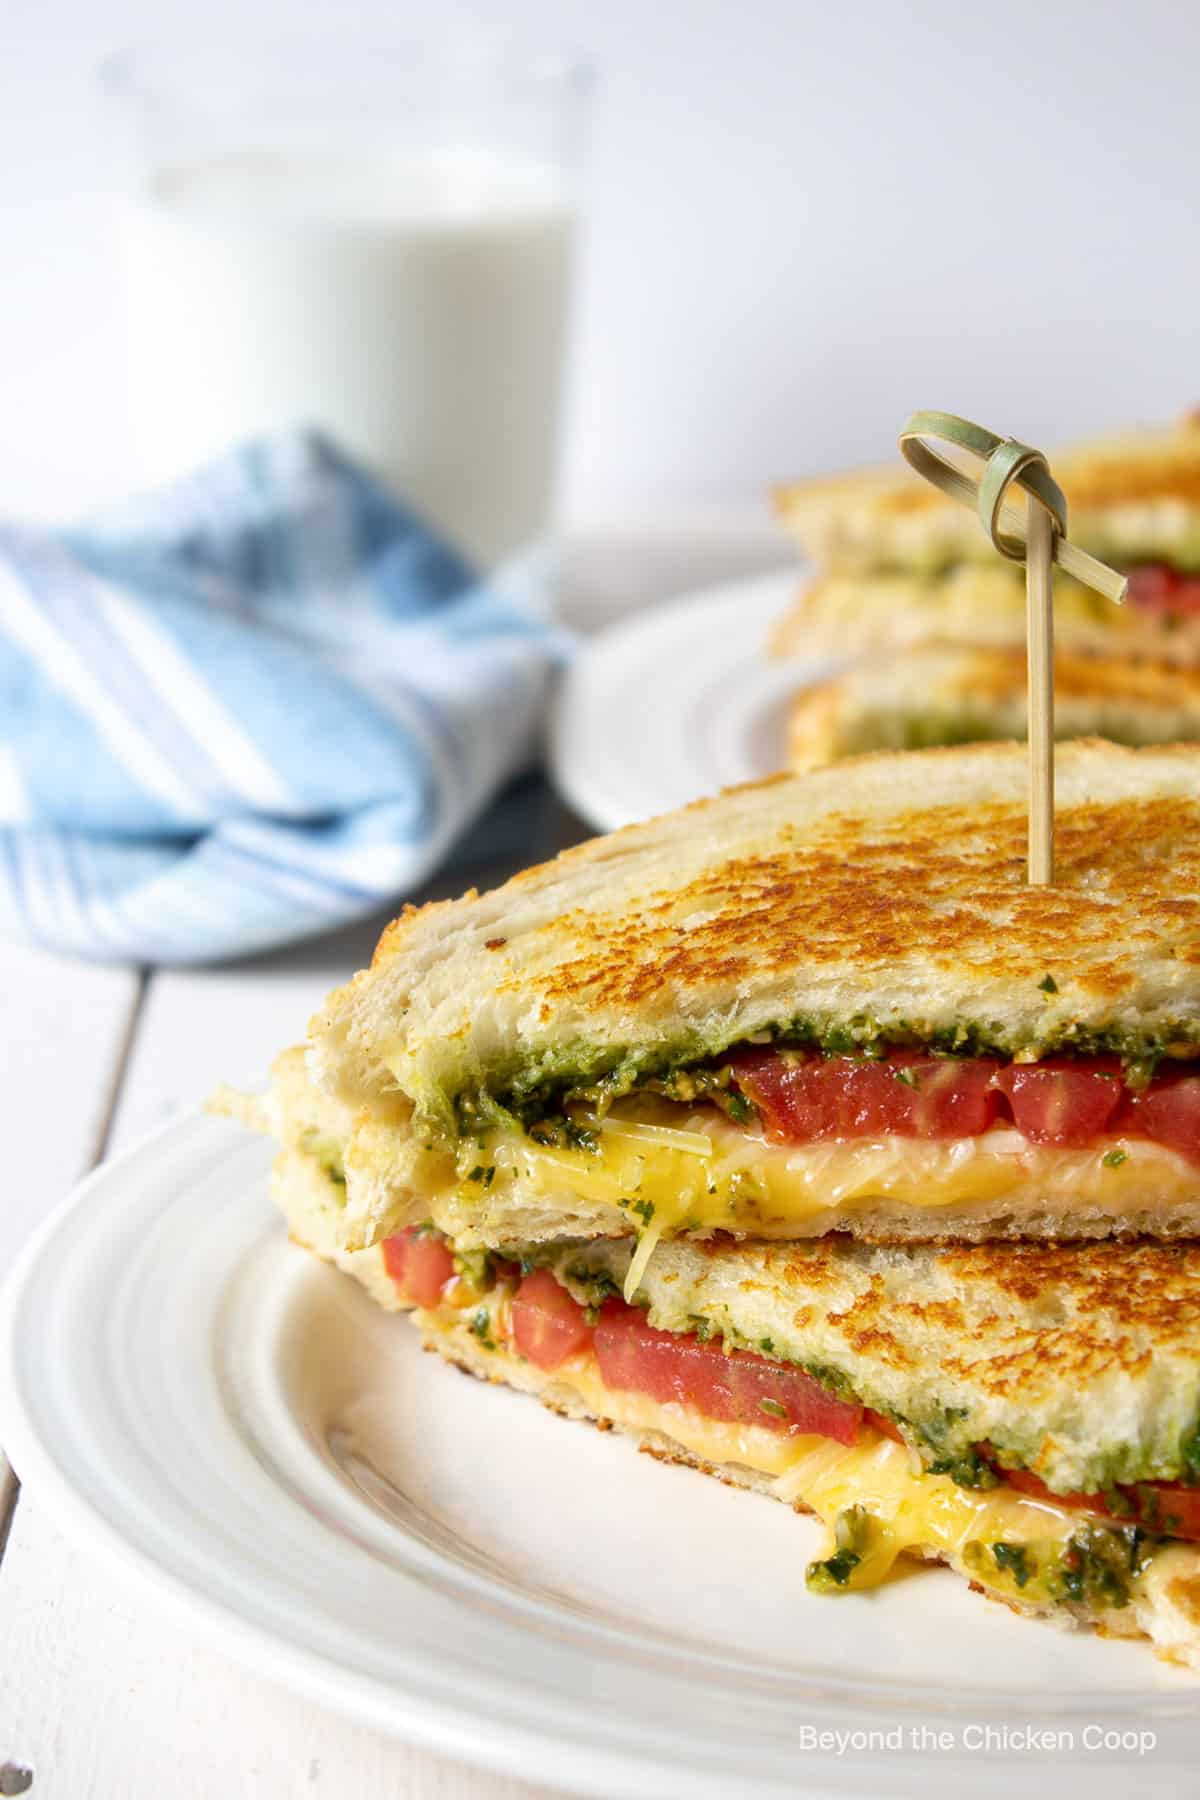 A grilled sandwich with tomatoes and pesto.